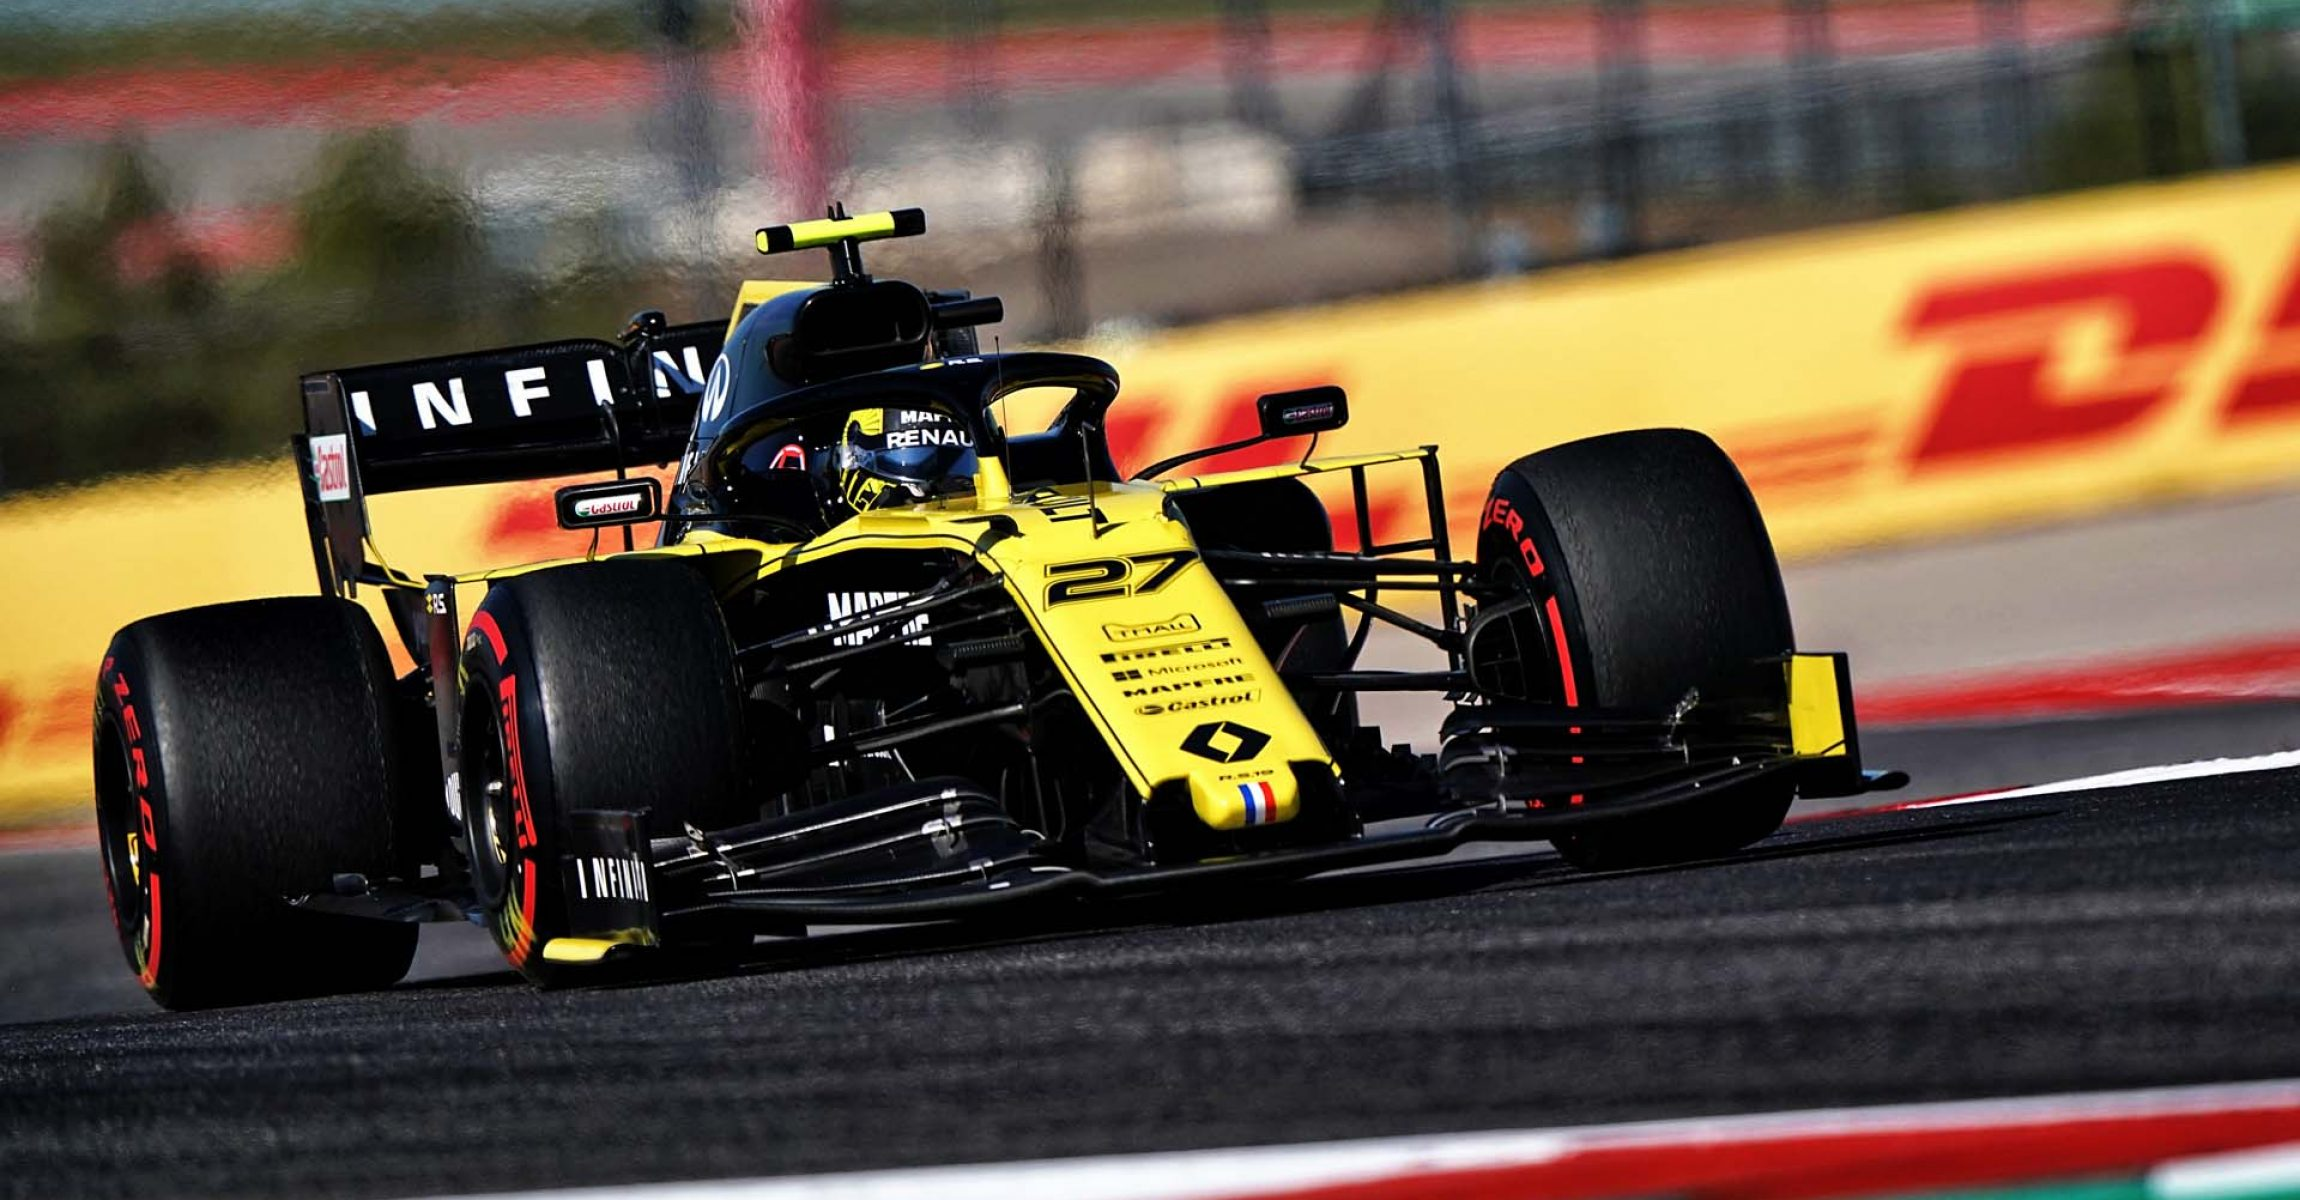 Nico Hülkenberg (GER) Renault F1 Team RS19. United States Grand Prix, Friday 1st November 2019. Circuit of the Americas, Austin, Texas, USA.